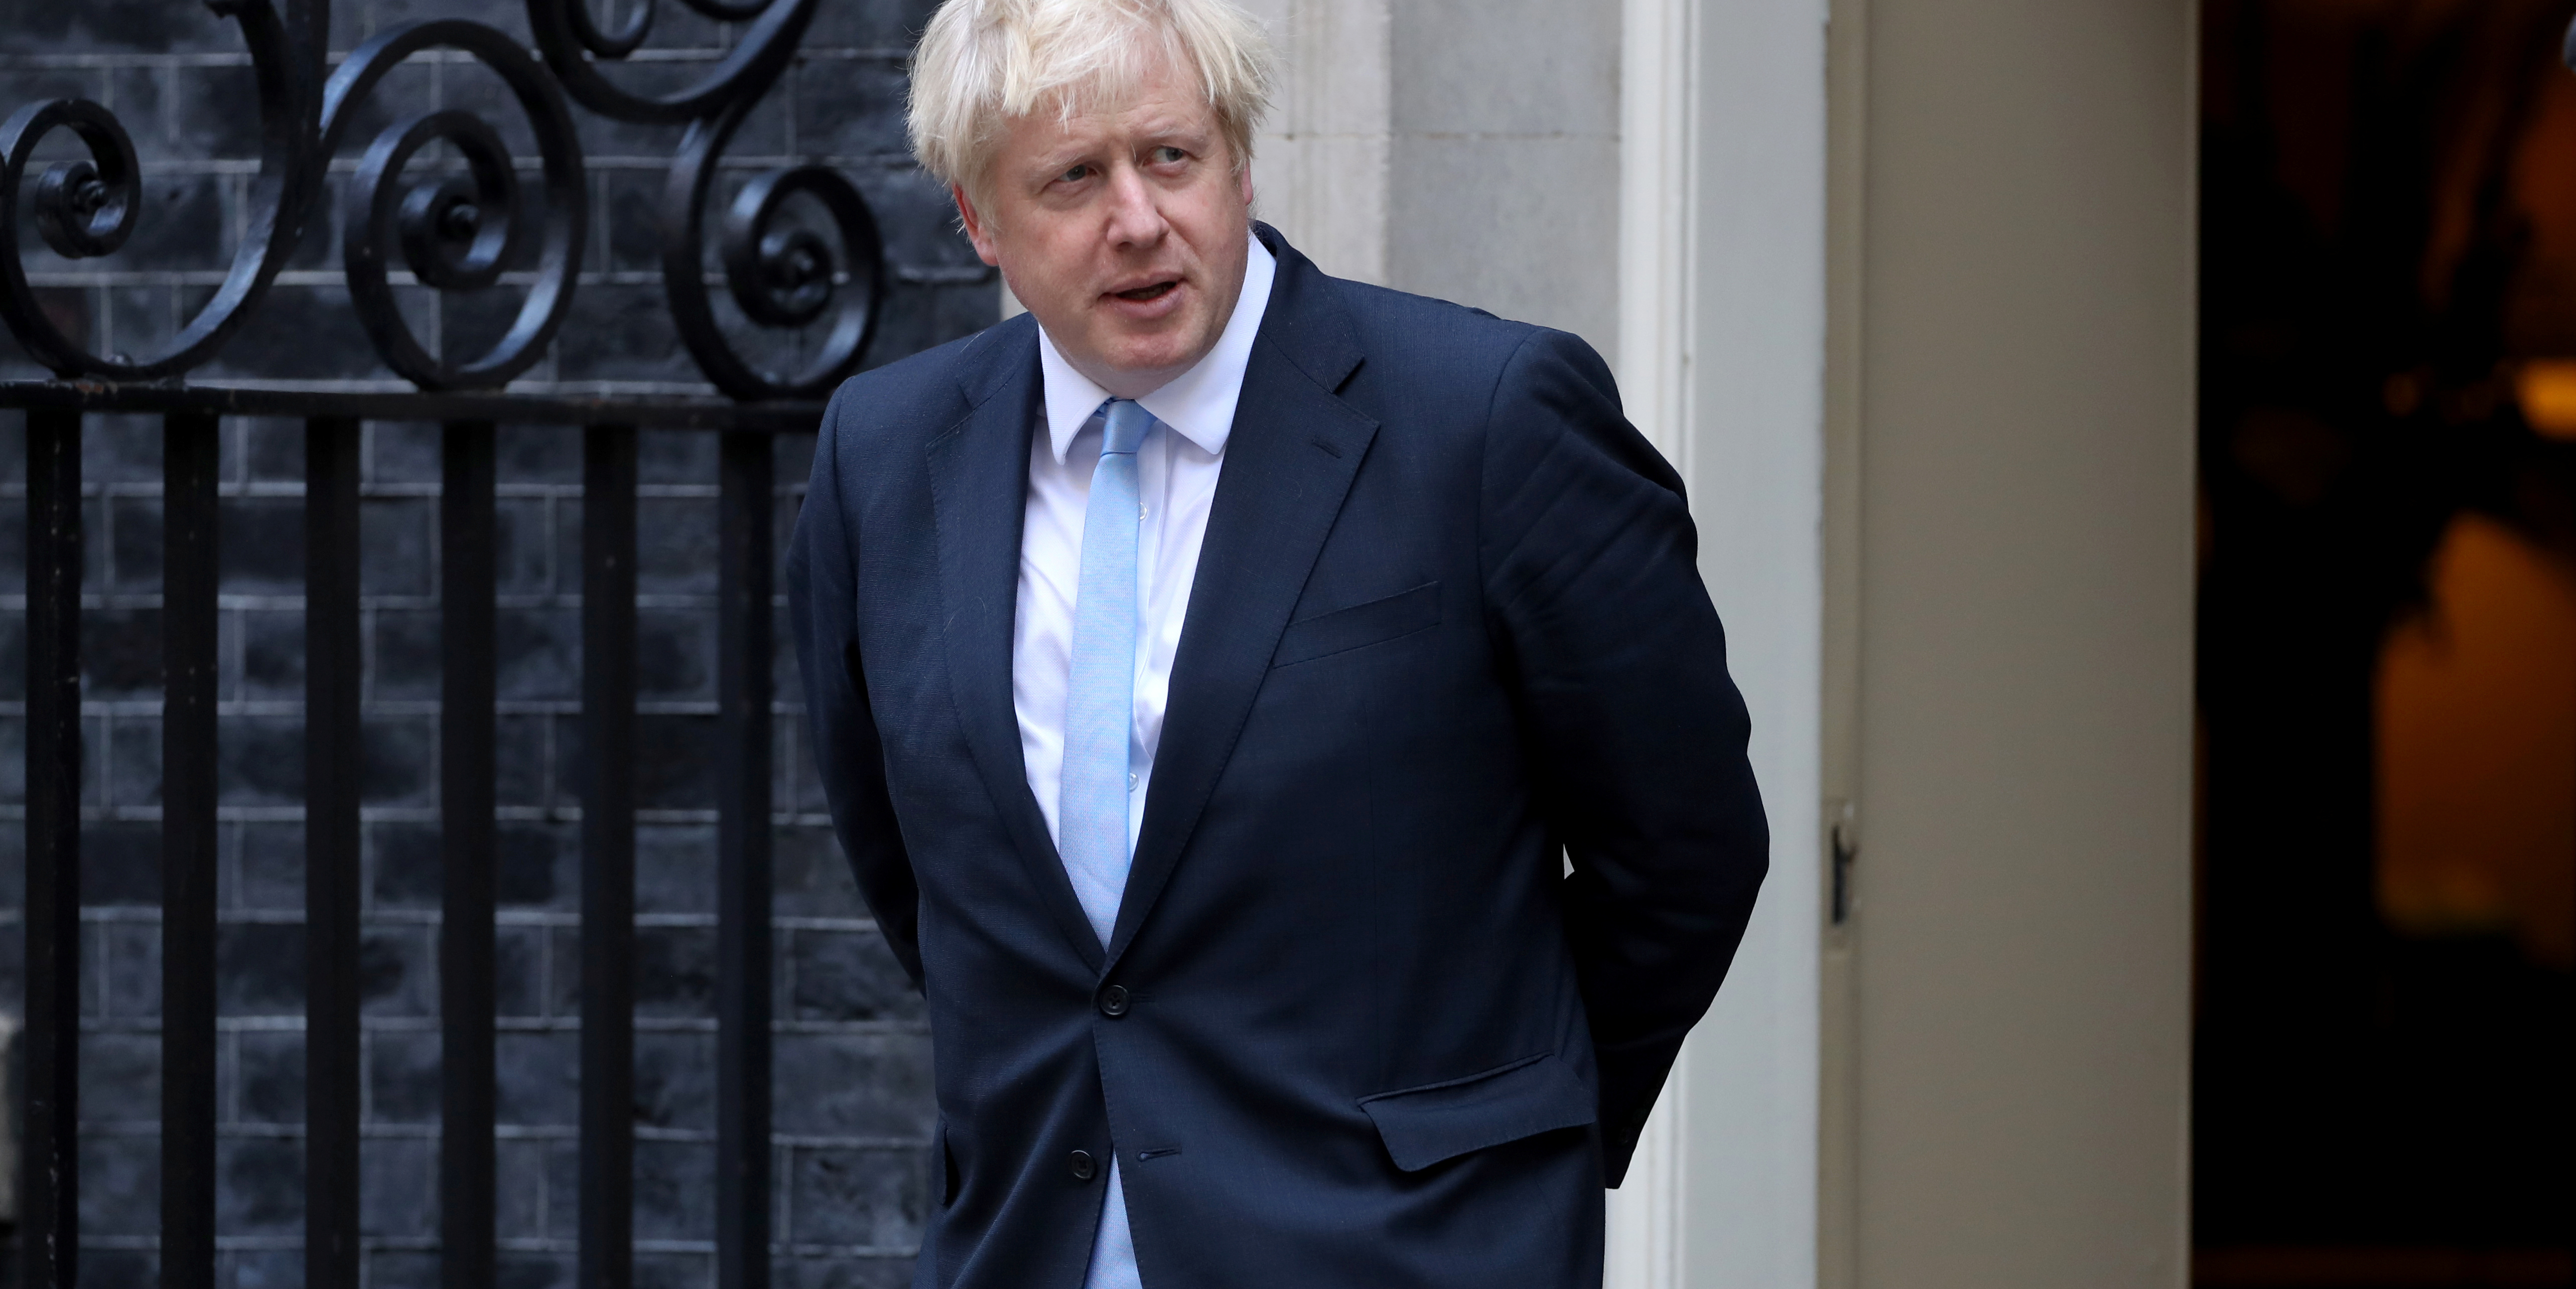 https://img3.s3wfg.com/web/img/images_uploaded/a/b/boris-johnson-dement-avoir-menti-a-la-reine.png